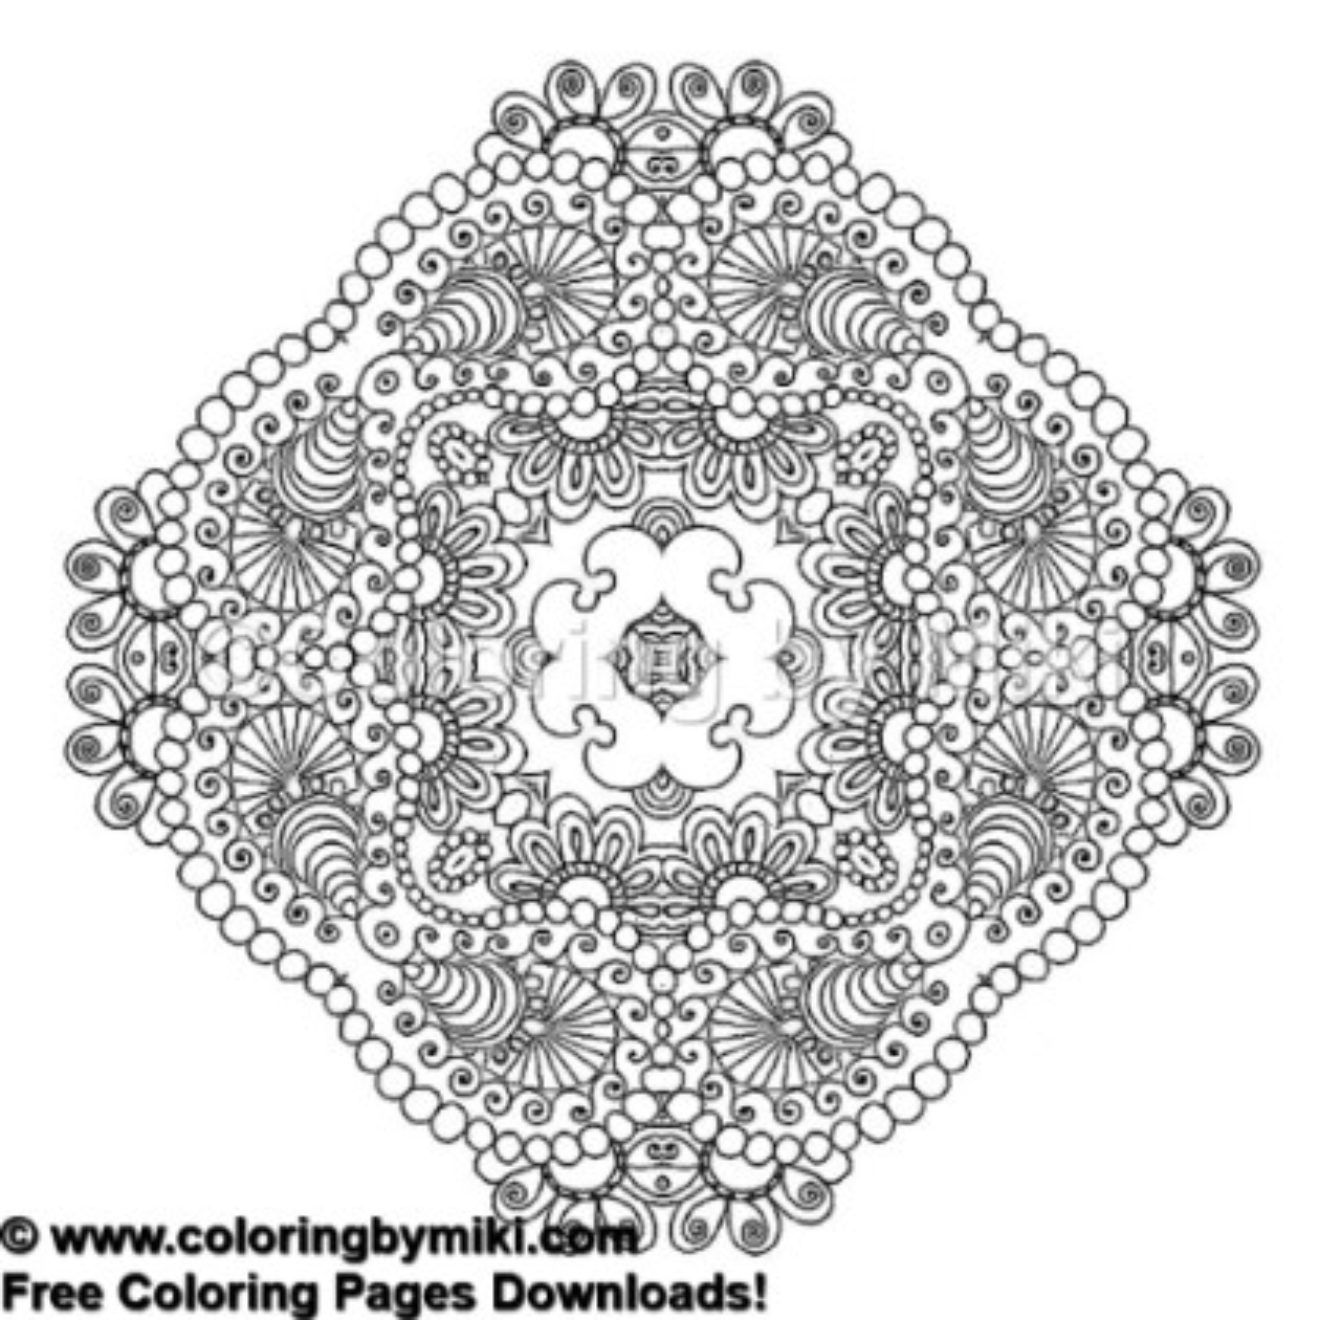 Kaleidoscope Mandala Coloring Page 496 freeprintable coloring coloringforadults